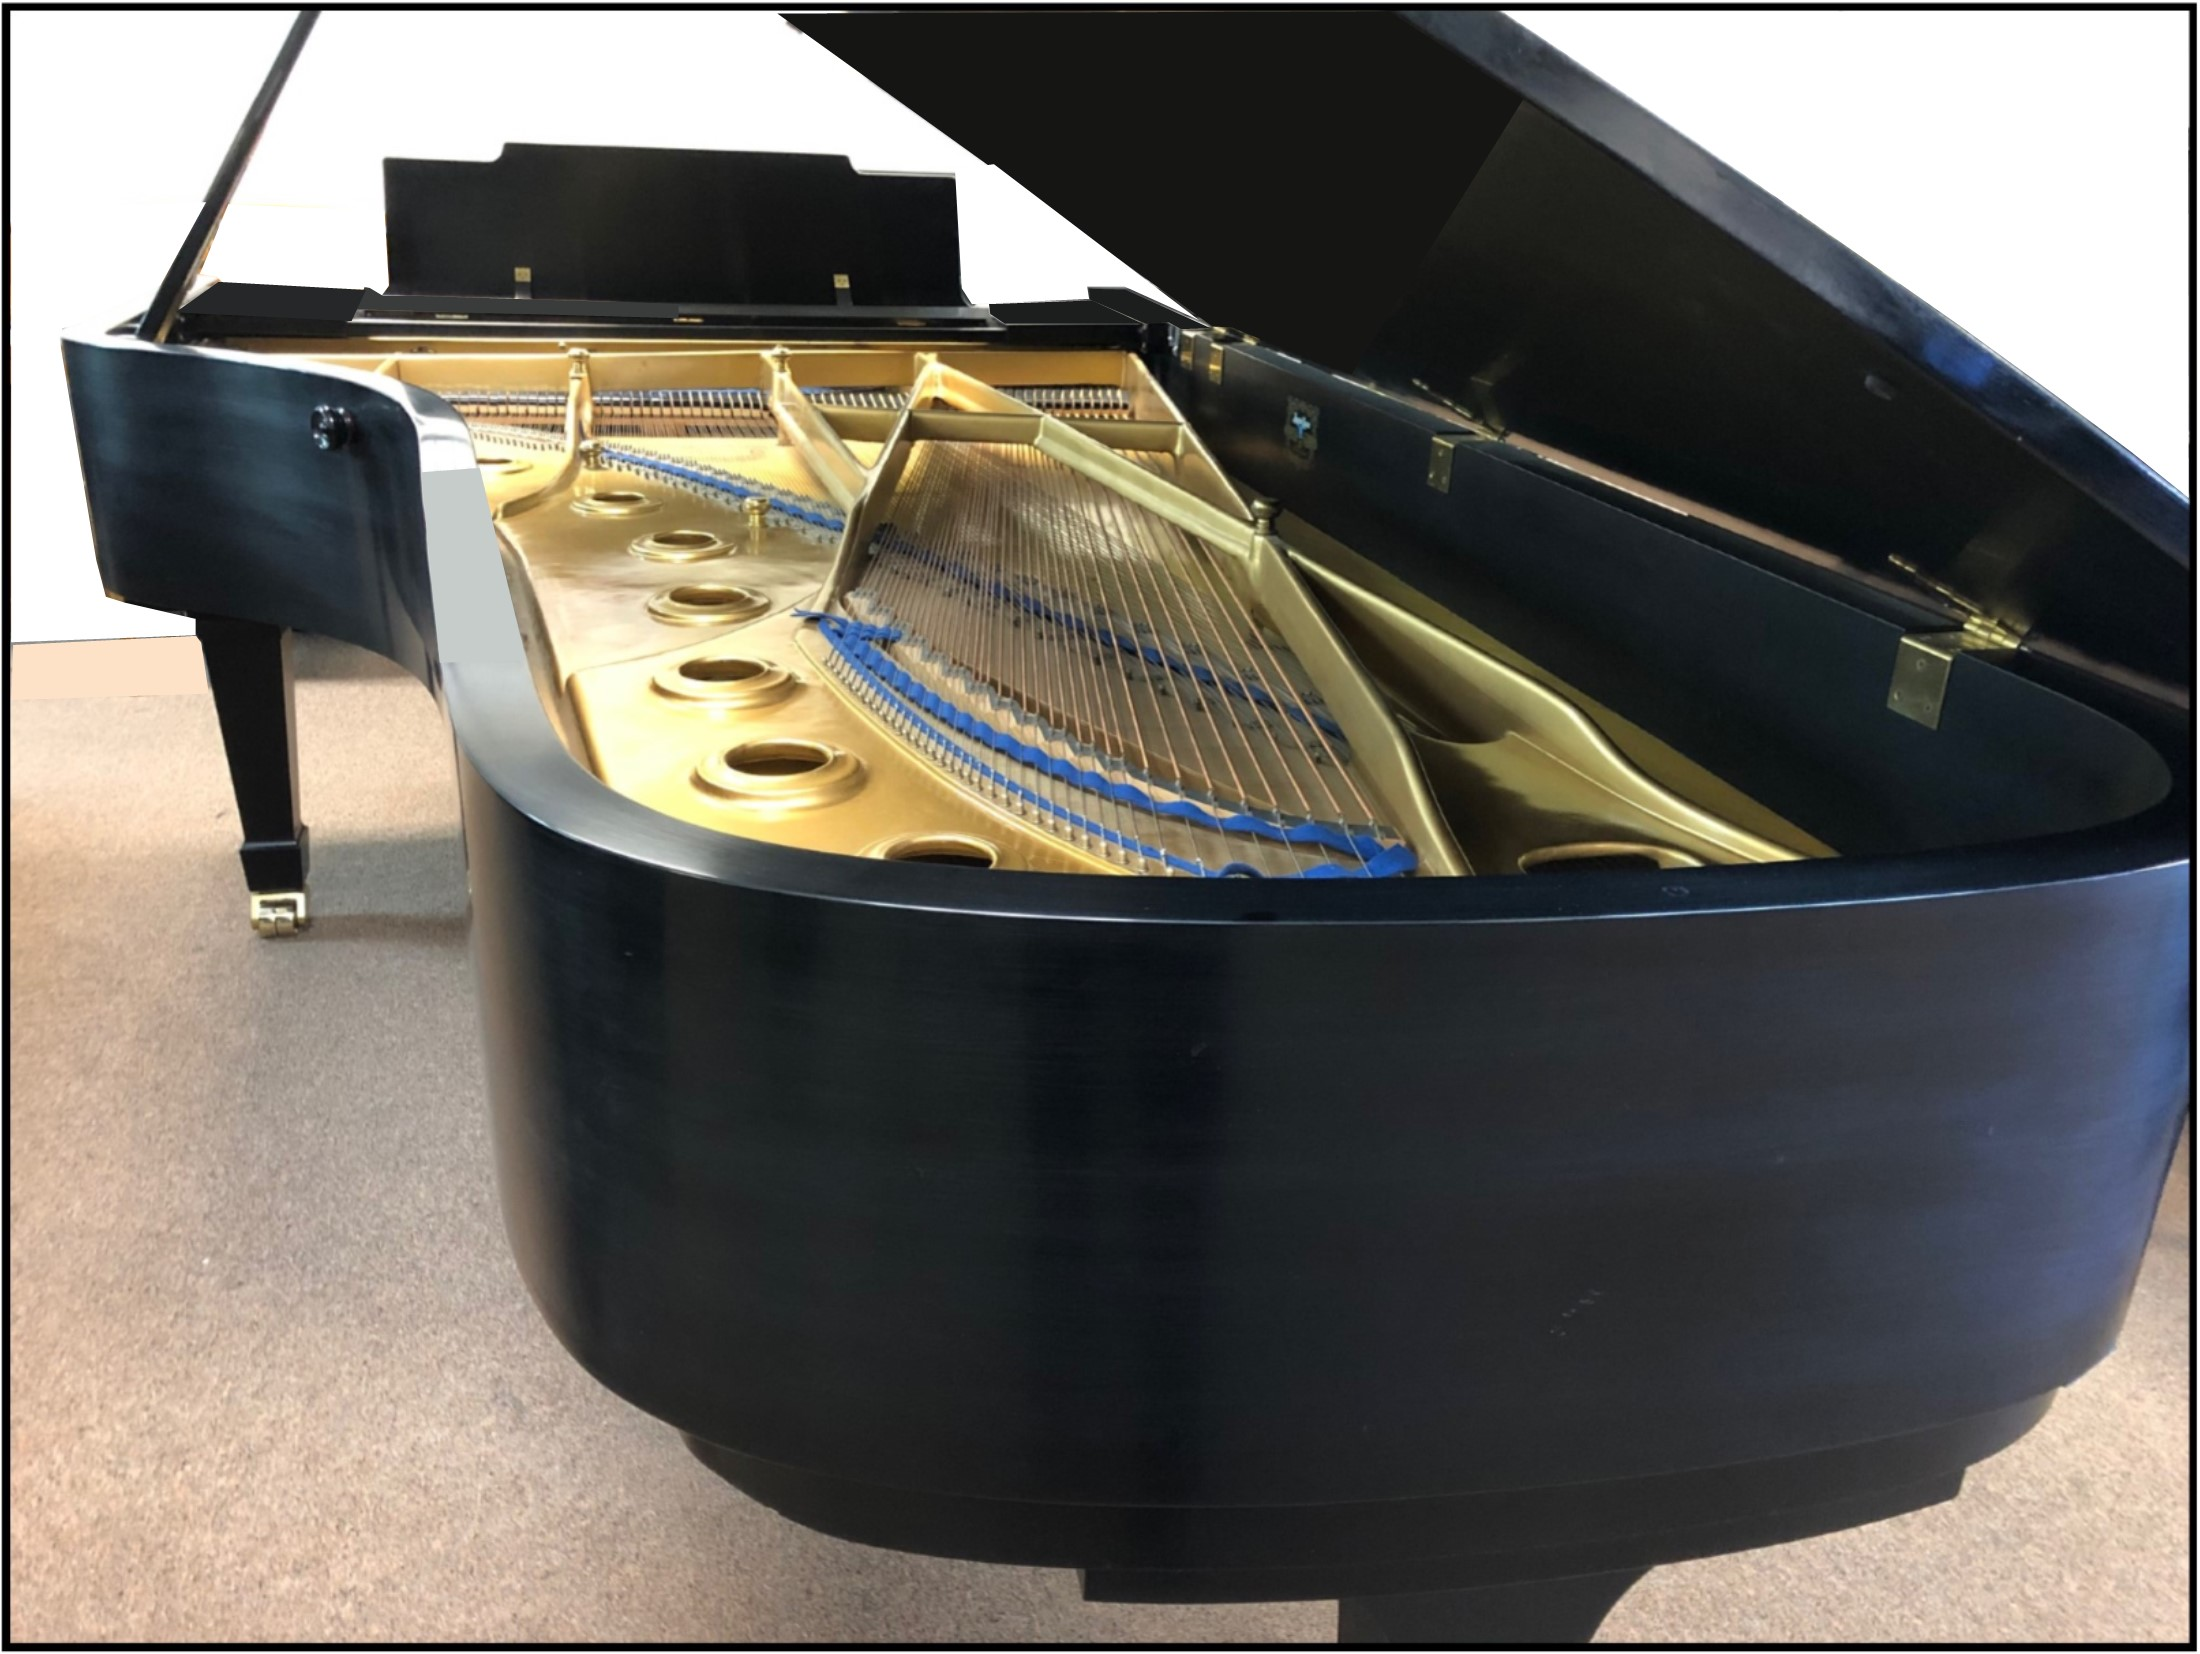 Kawai concert grand piano for sale